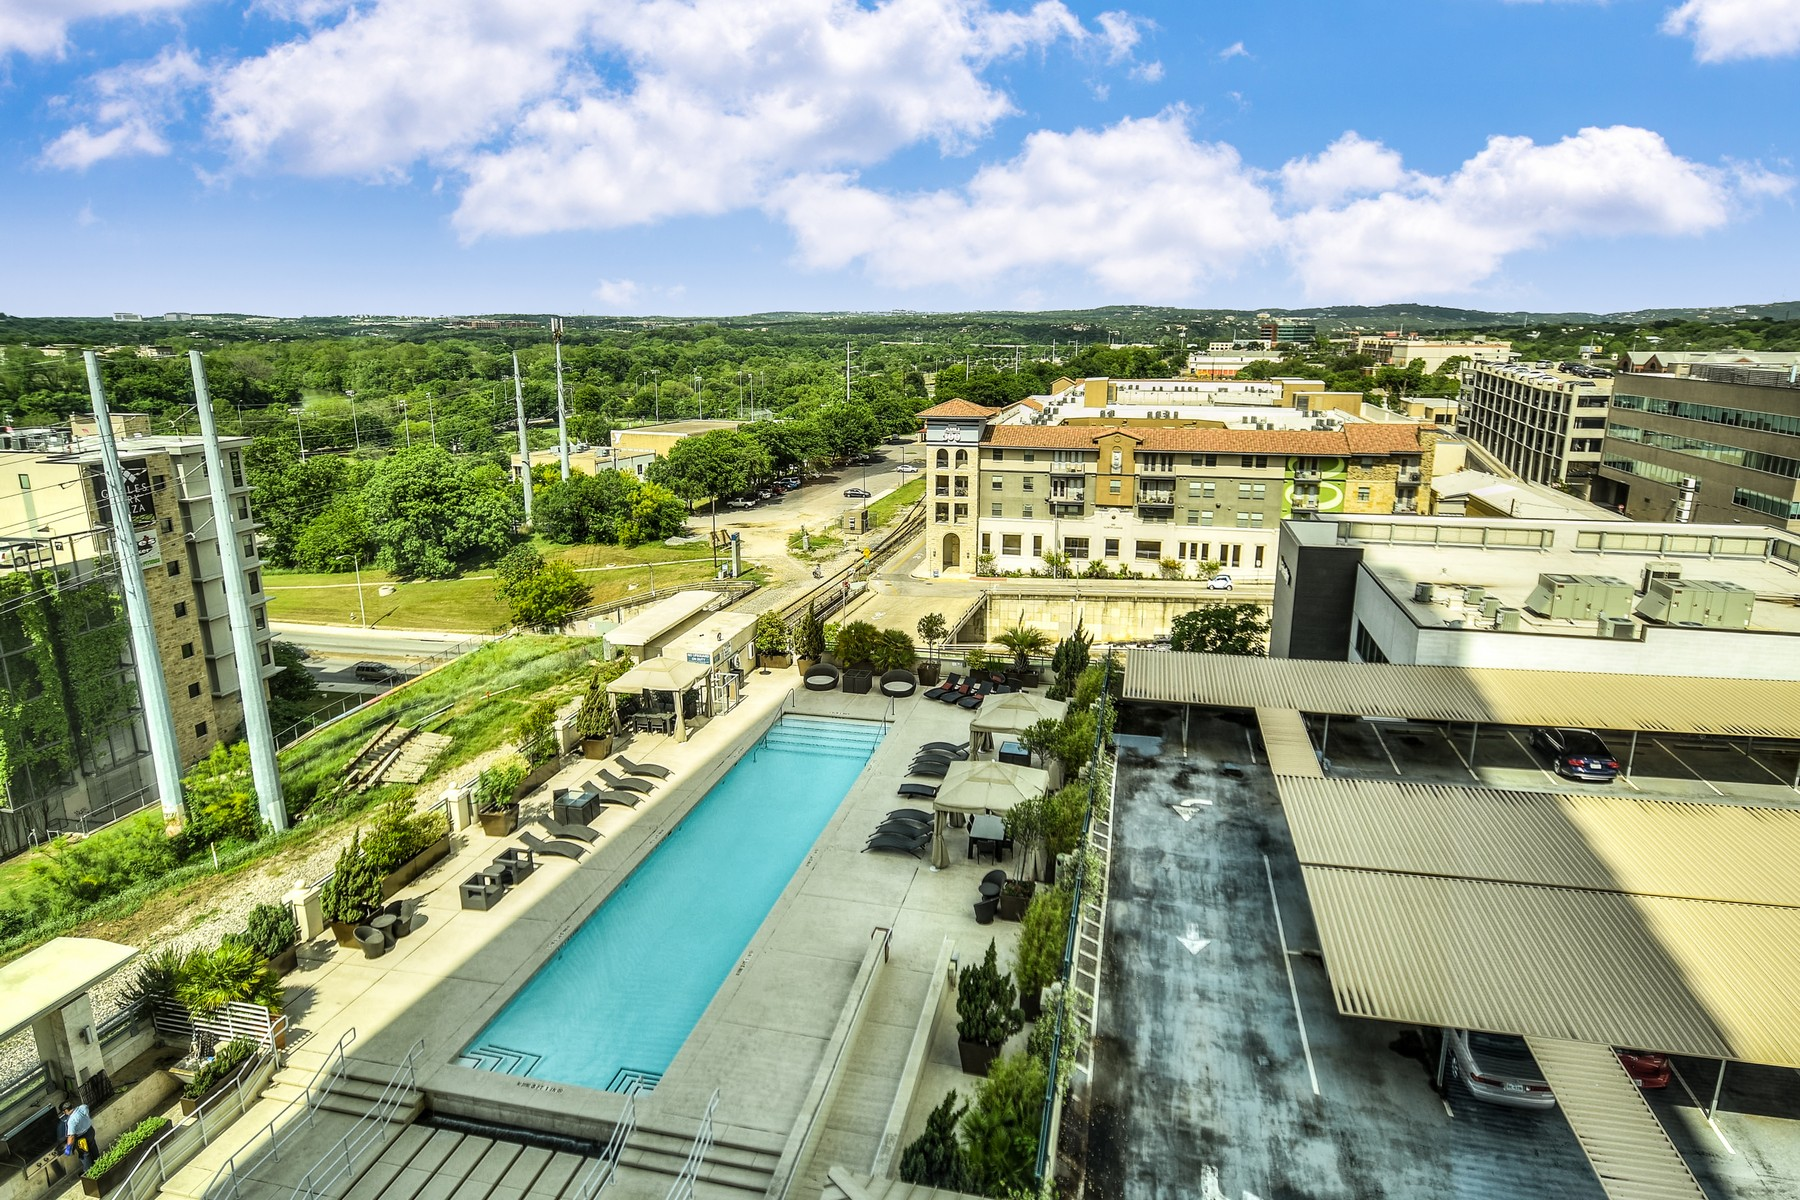 Condominium for Sale at Wonderful Views from 10th Floor Spring Condo 300 Bowie St 1007 Austin, Texas 78703 United States